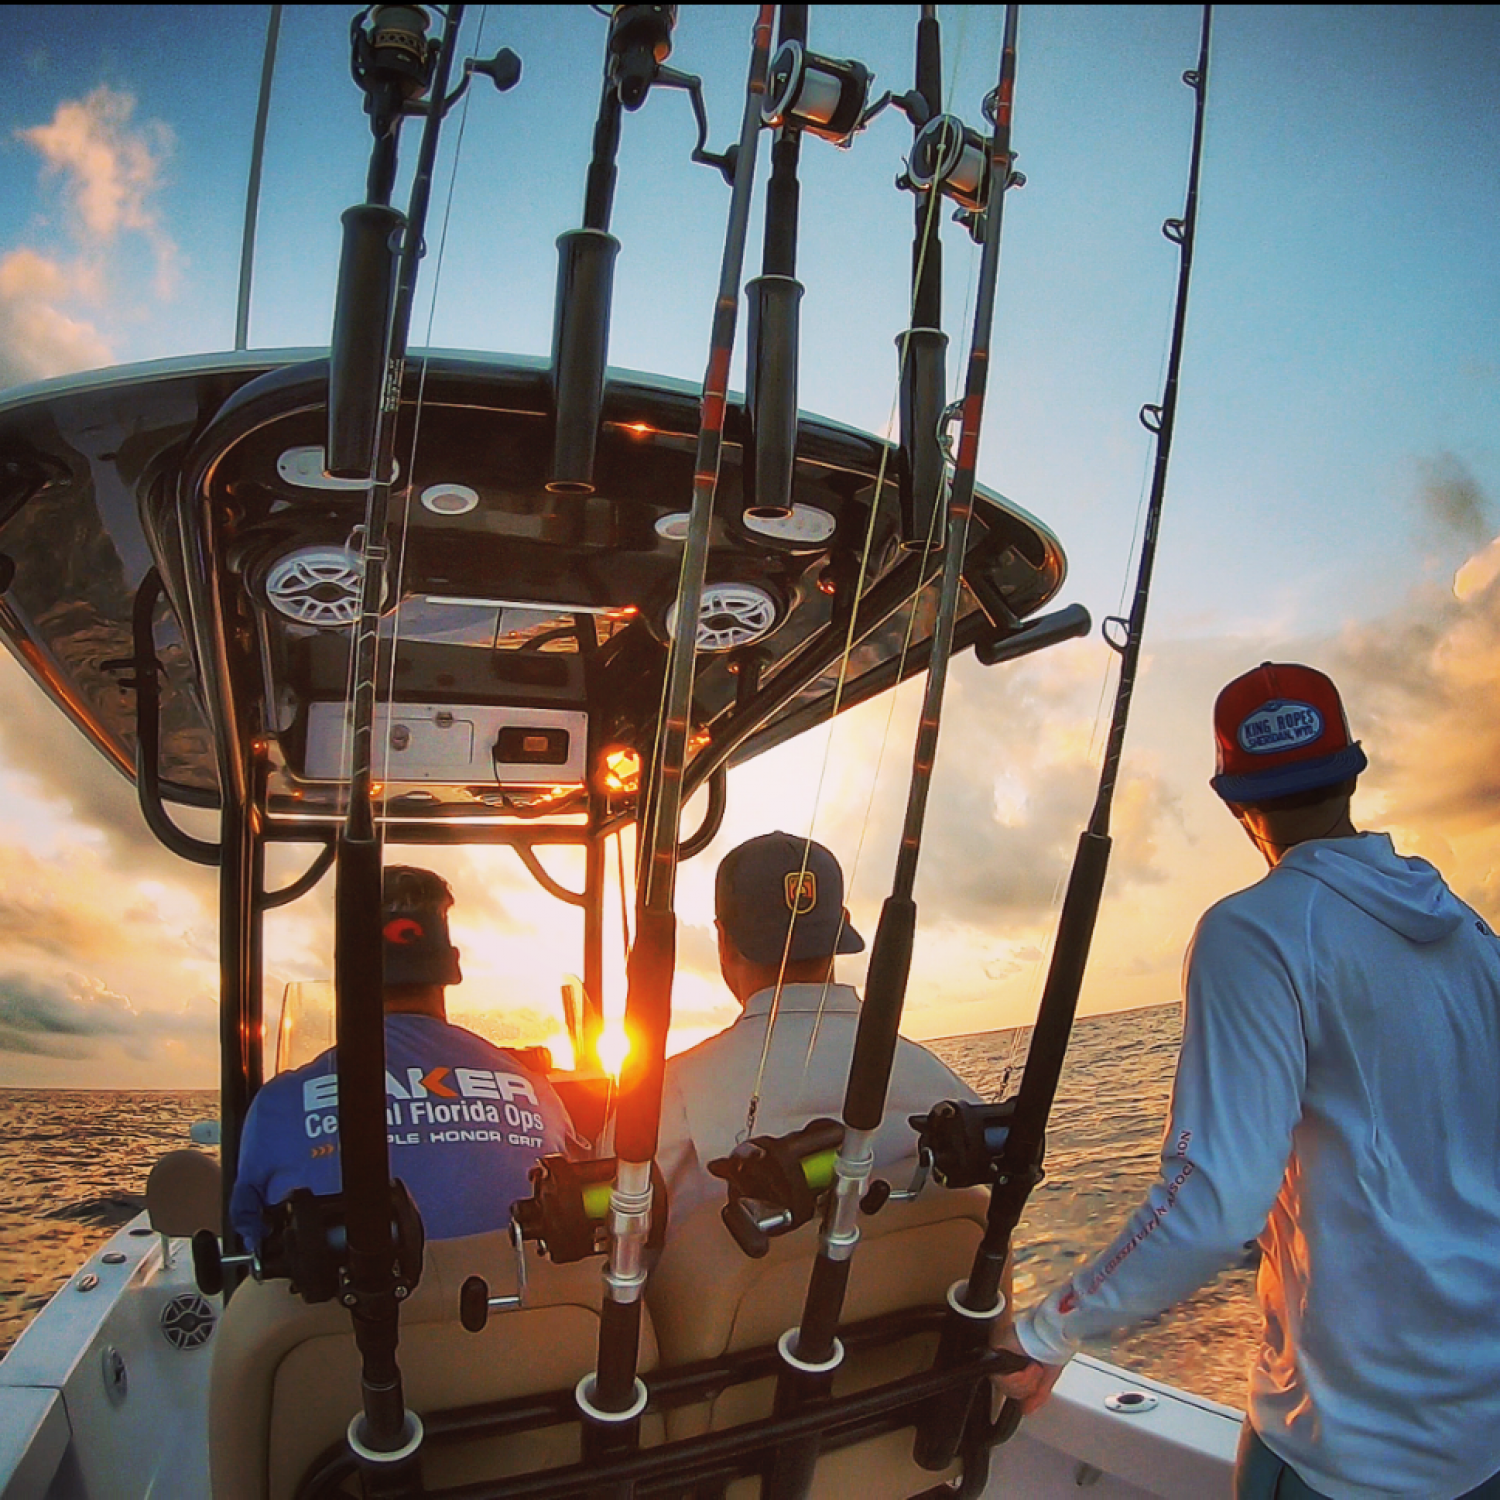 Title: Chasing The Sun - On board their Sportsman Masters 247 Bay Boat - Location: Cape Canaveral, FL. Participating in the Photo Contest #SportsmanMay2020